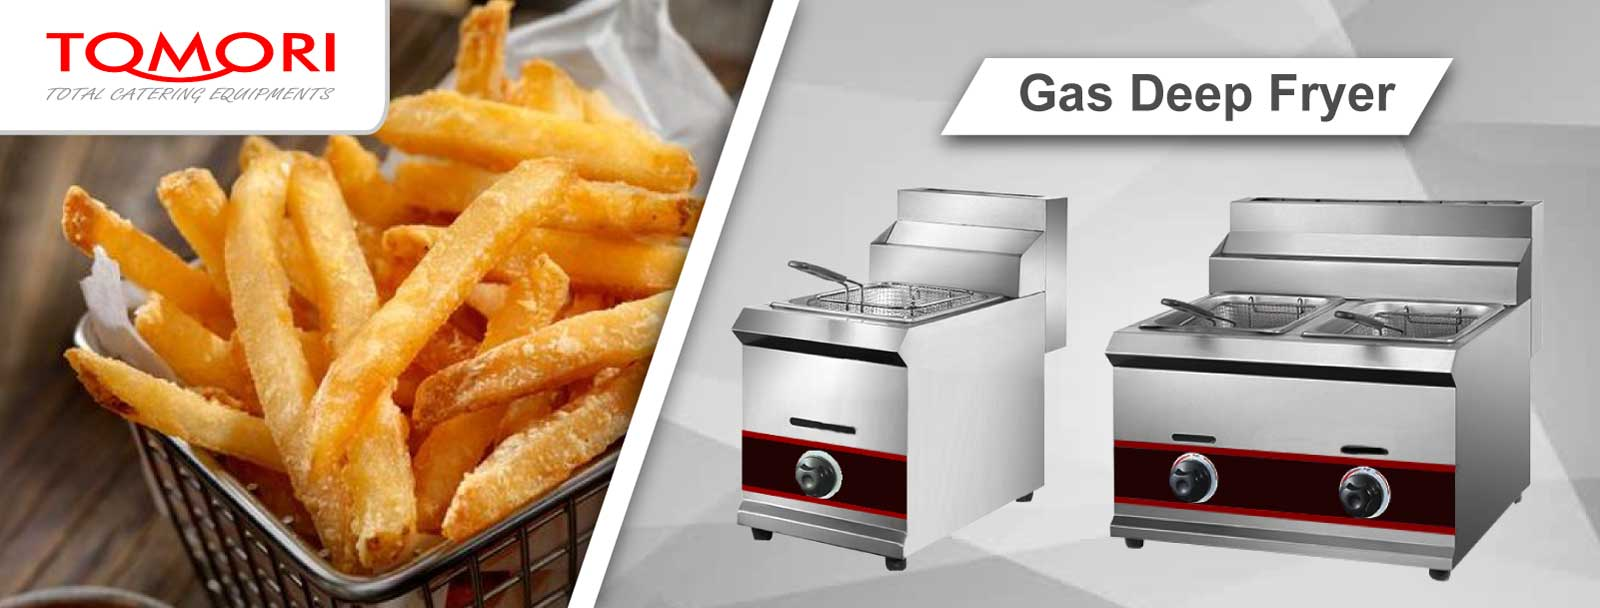 Jual Gas Deep Fryer